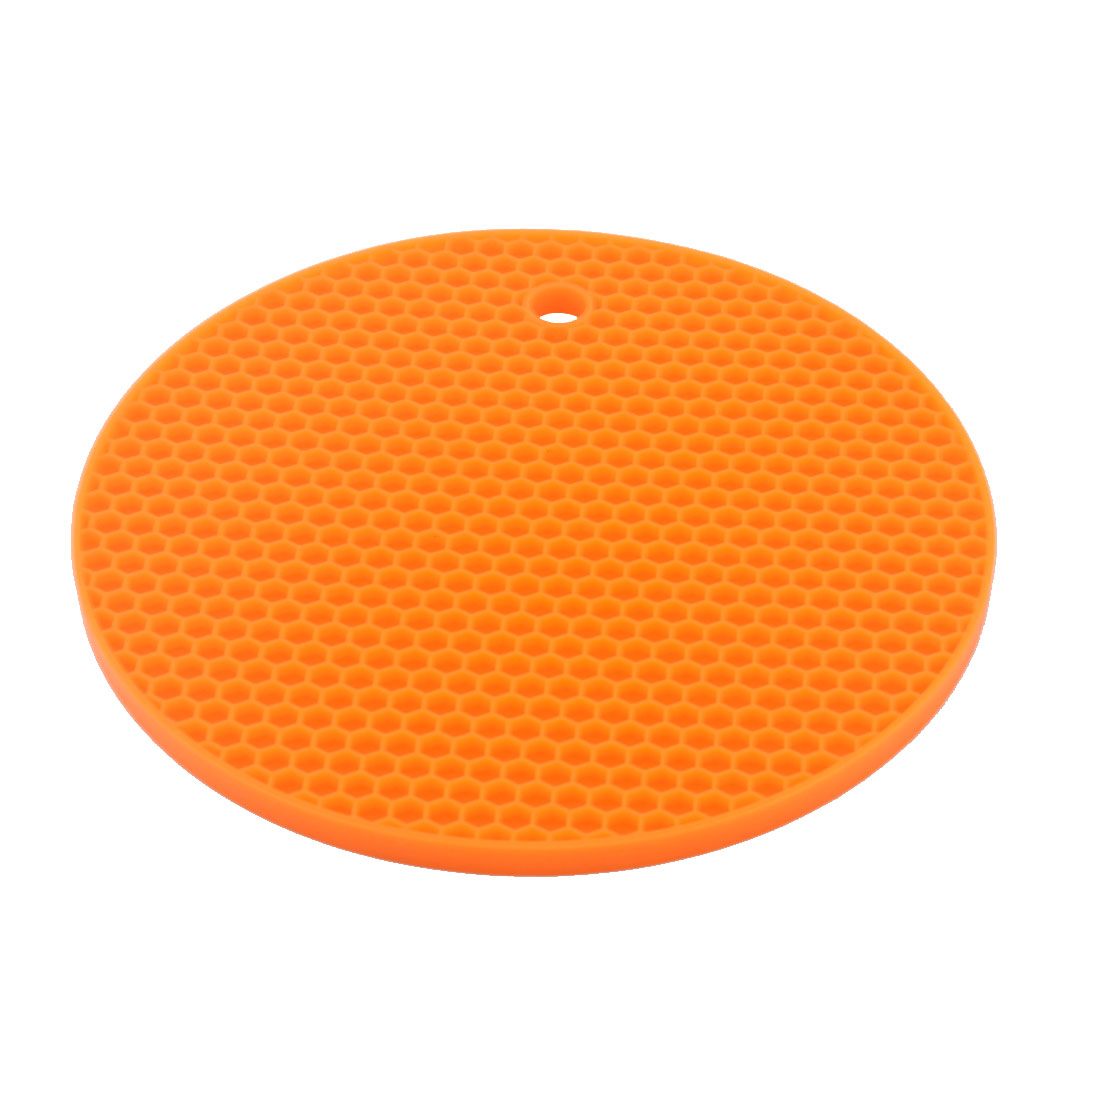 Silicone Honeycomb Design Table Heat Resistant Mat Cup Coaster Cushion Placemat Pad Orange